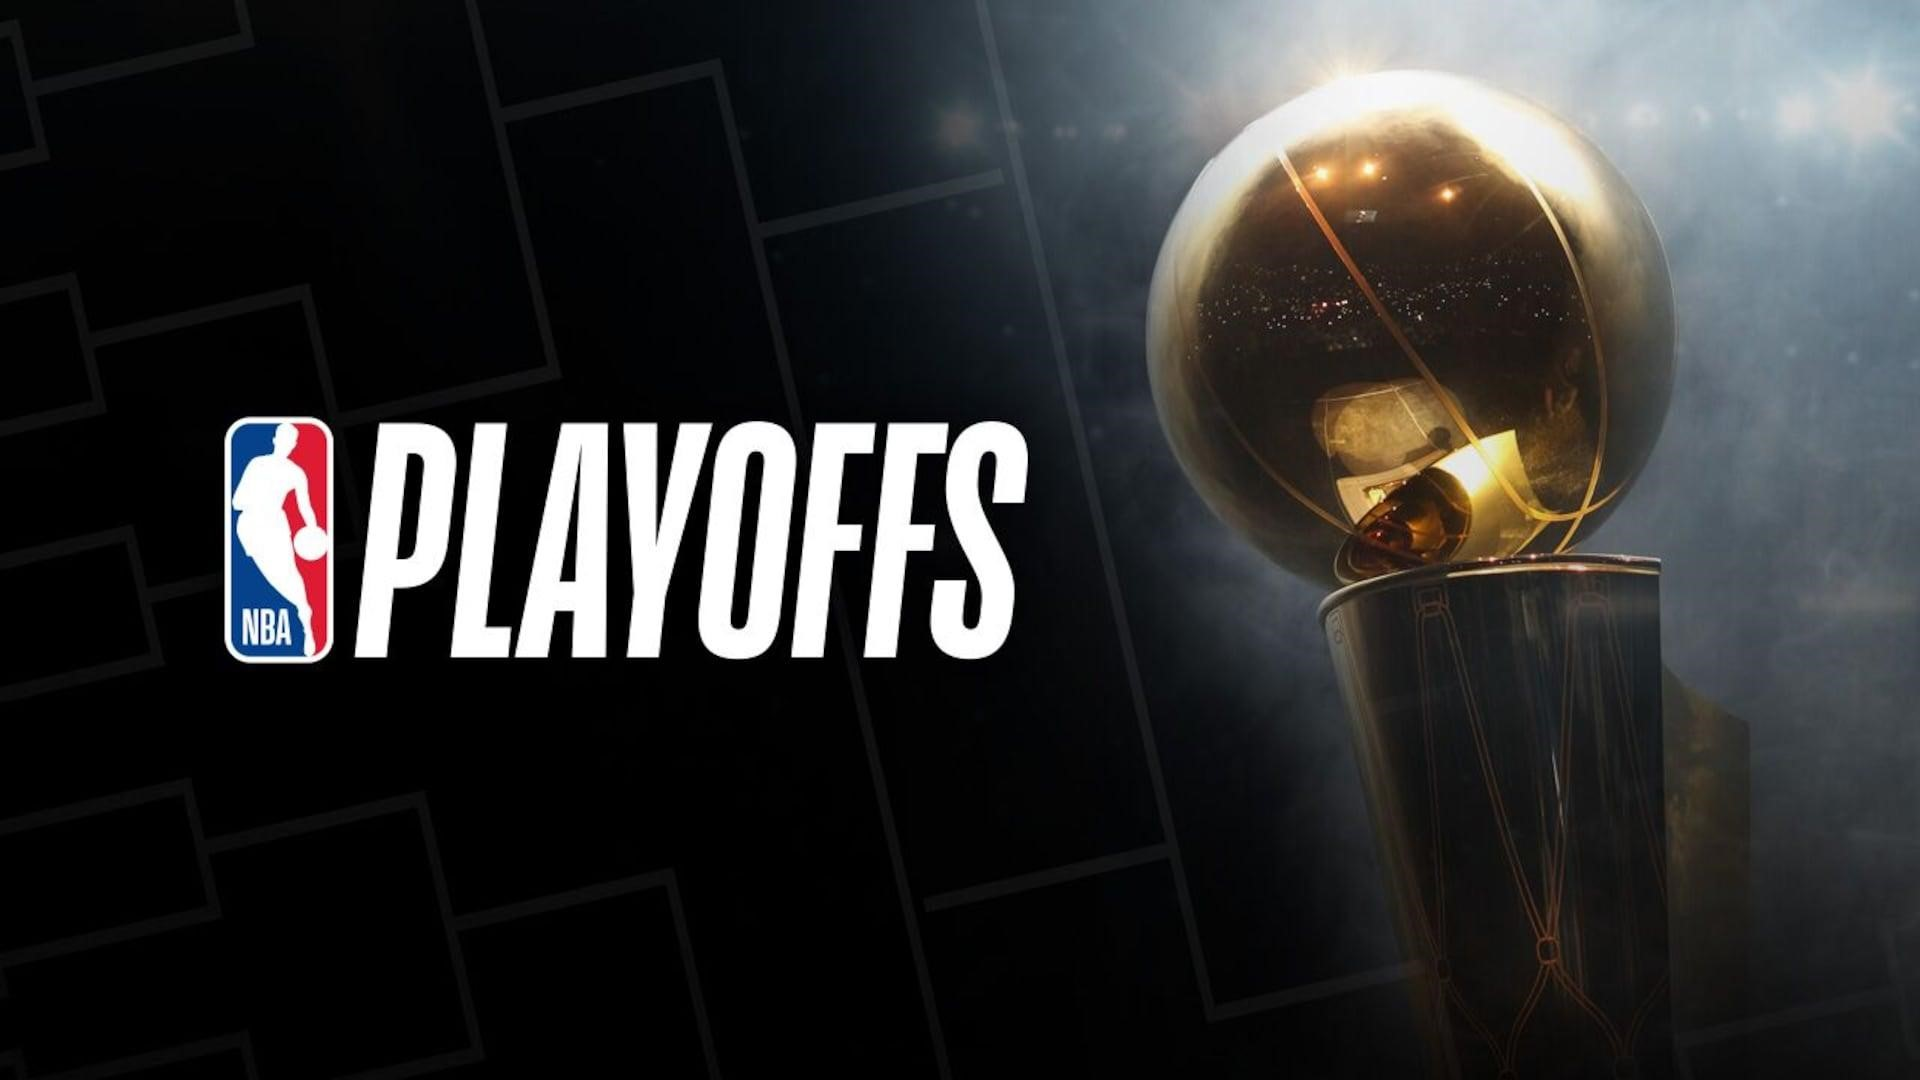 NBA 2020 PLAYOFF SEASON; HEAT AND LAKERS ARE FAVORITES FOR THE FINALS